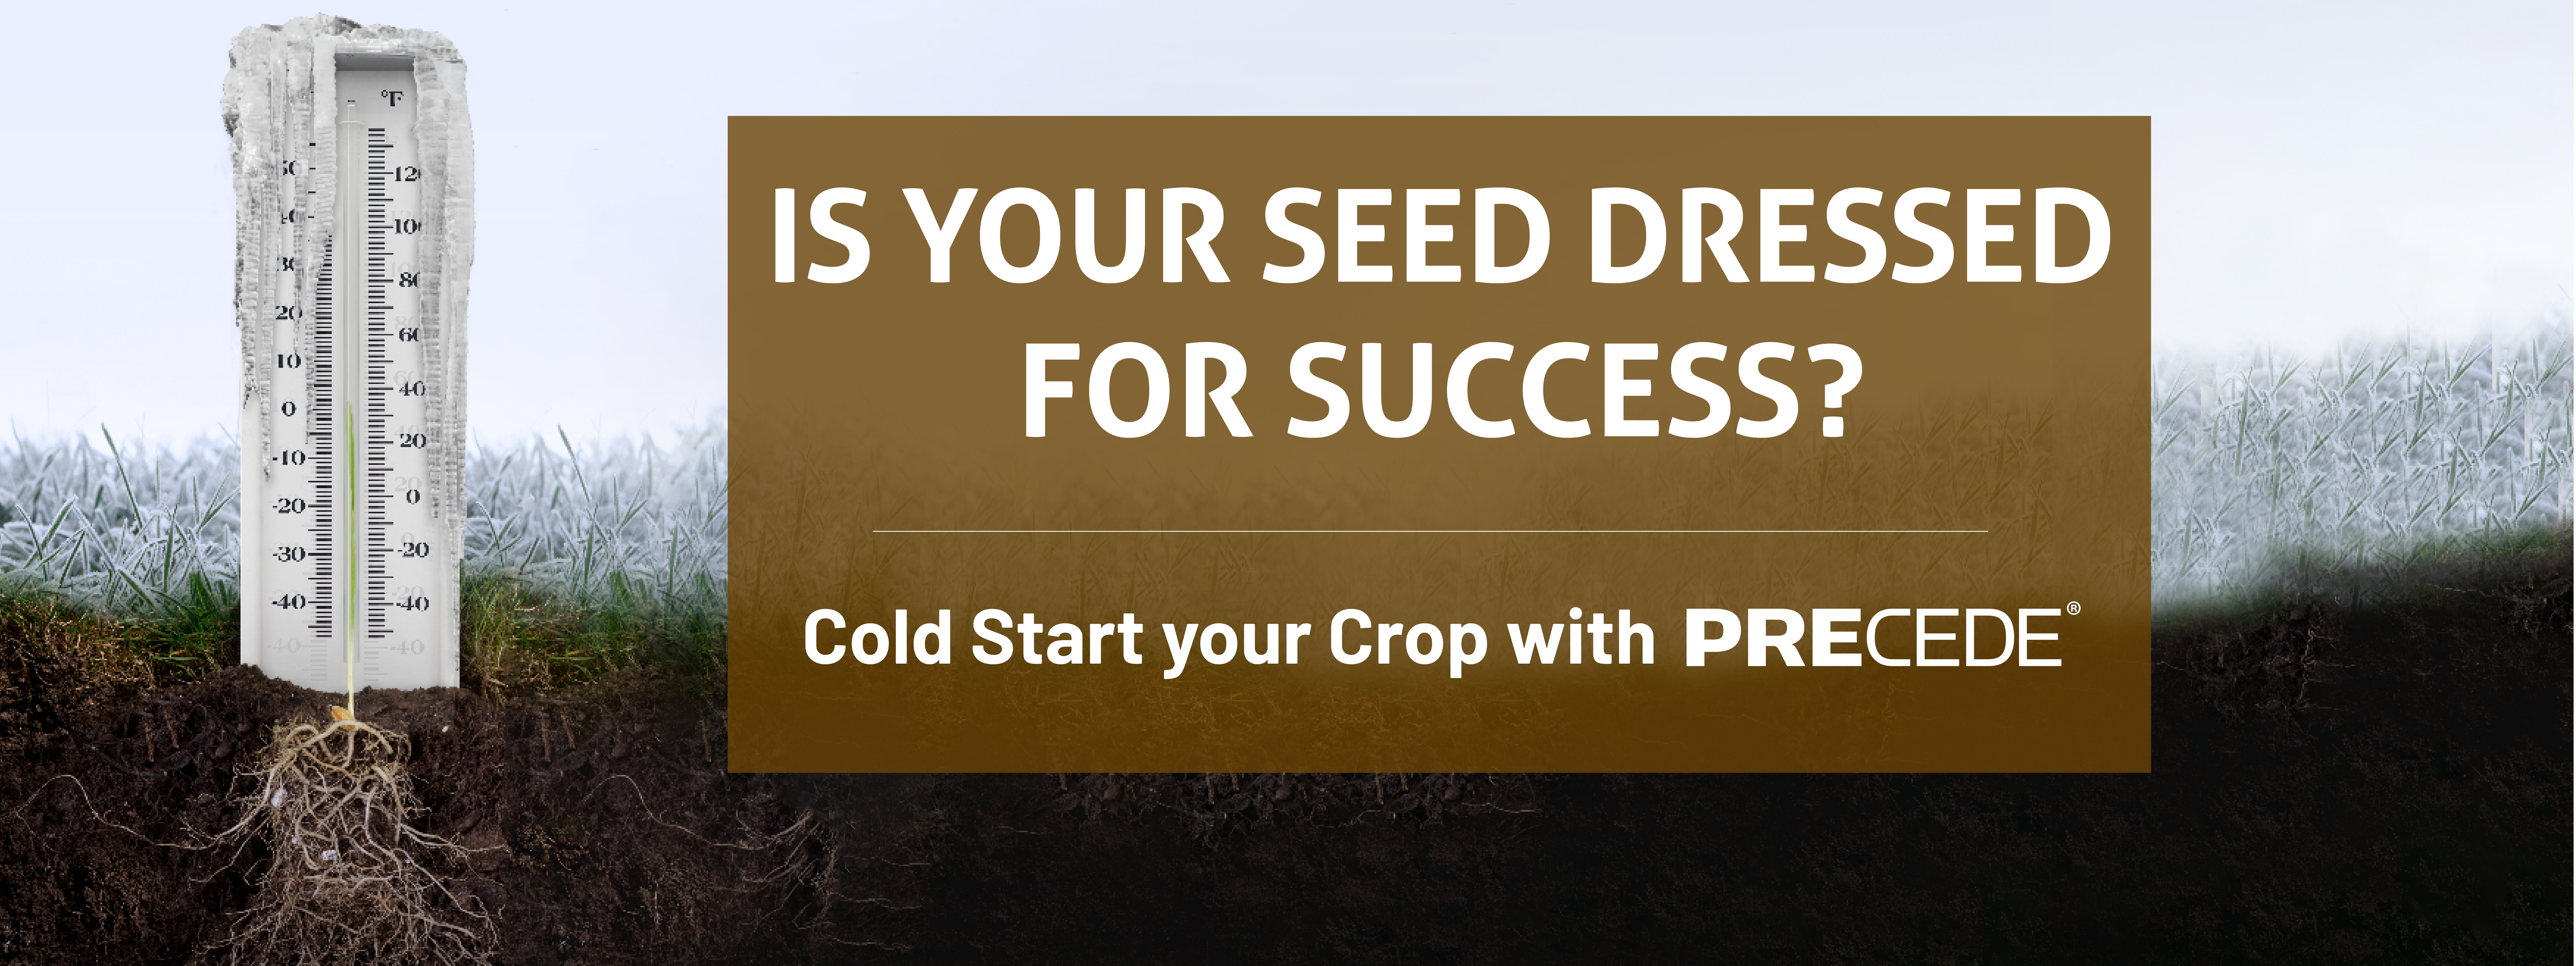 Is your seed dressed for success